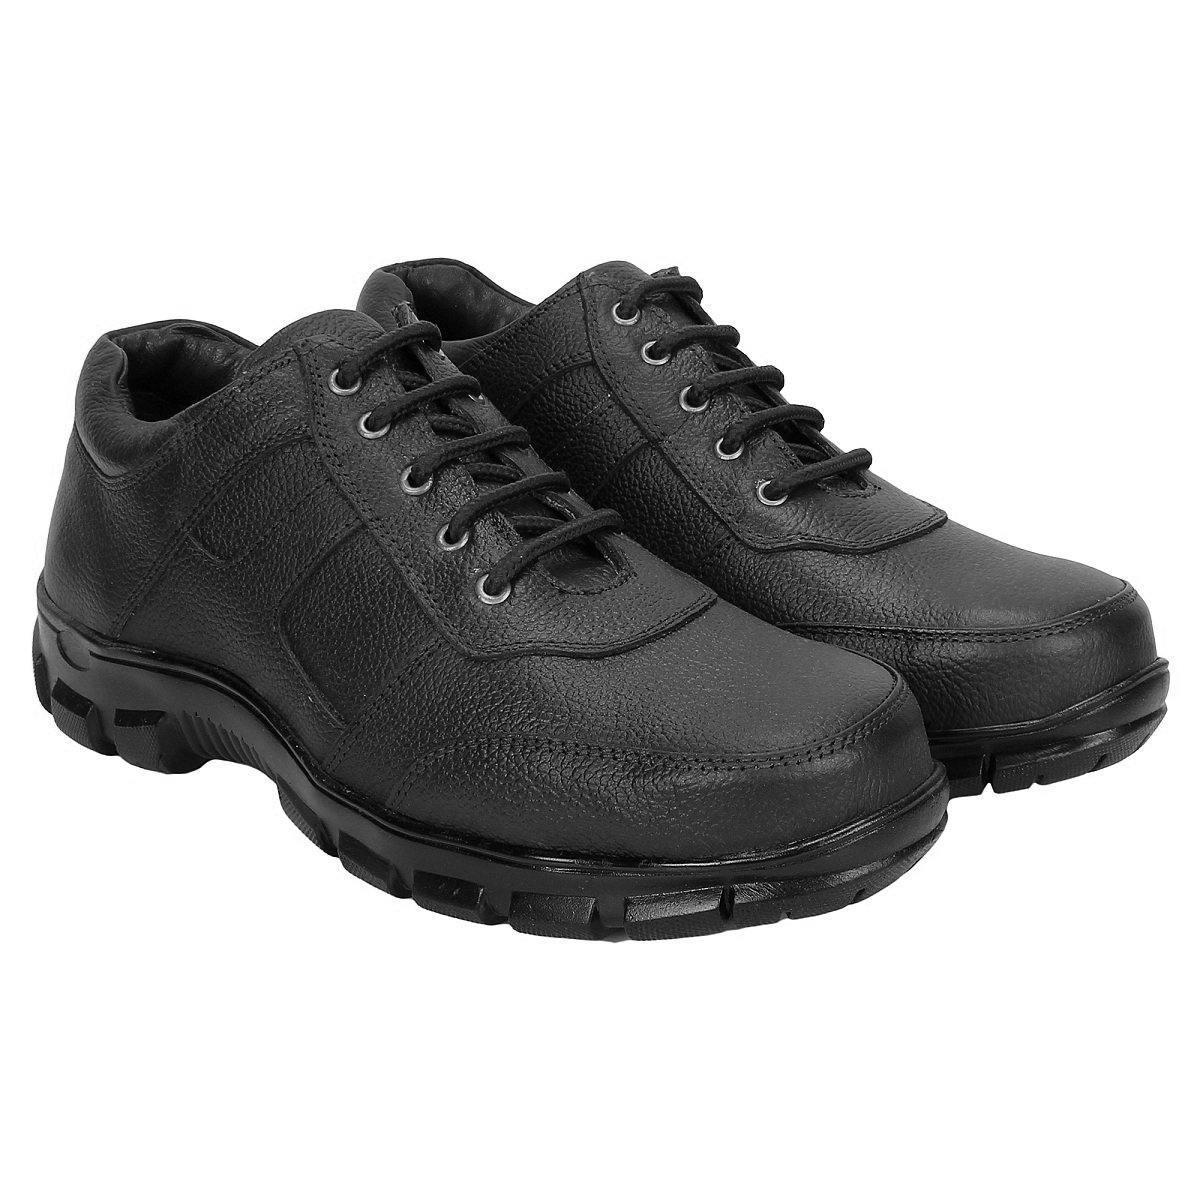 Roarking Leather Shoes for Men with Steel Toe- Minor Defect